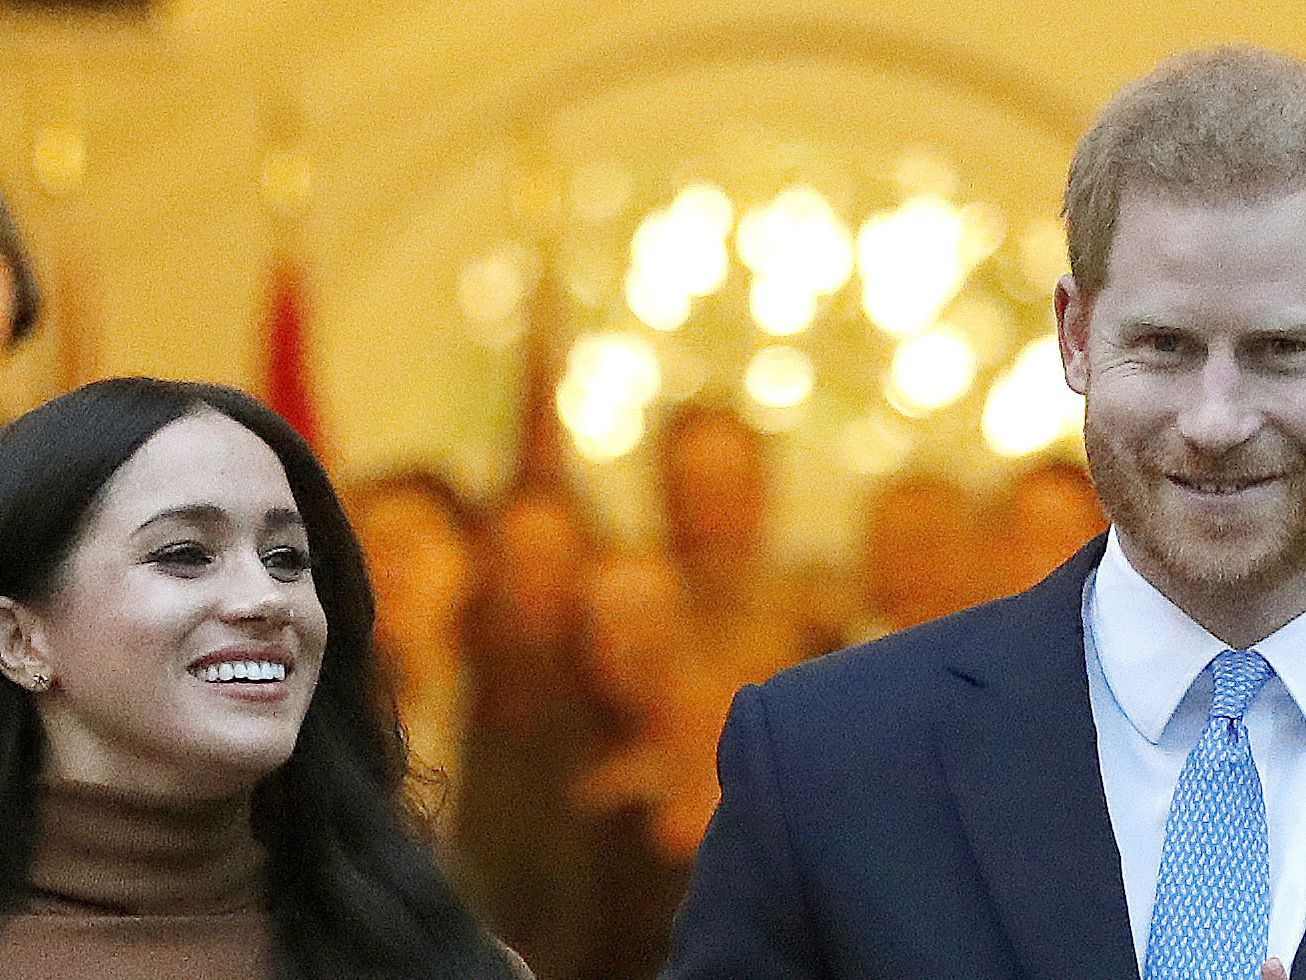 Prince Harry says he didn't walk away from royal duties